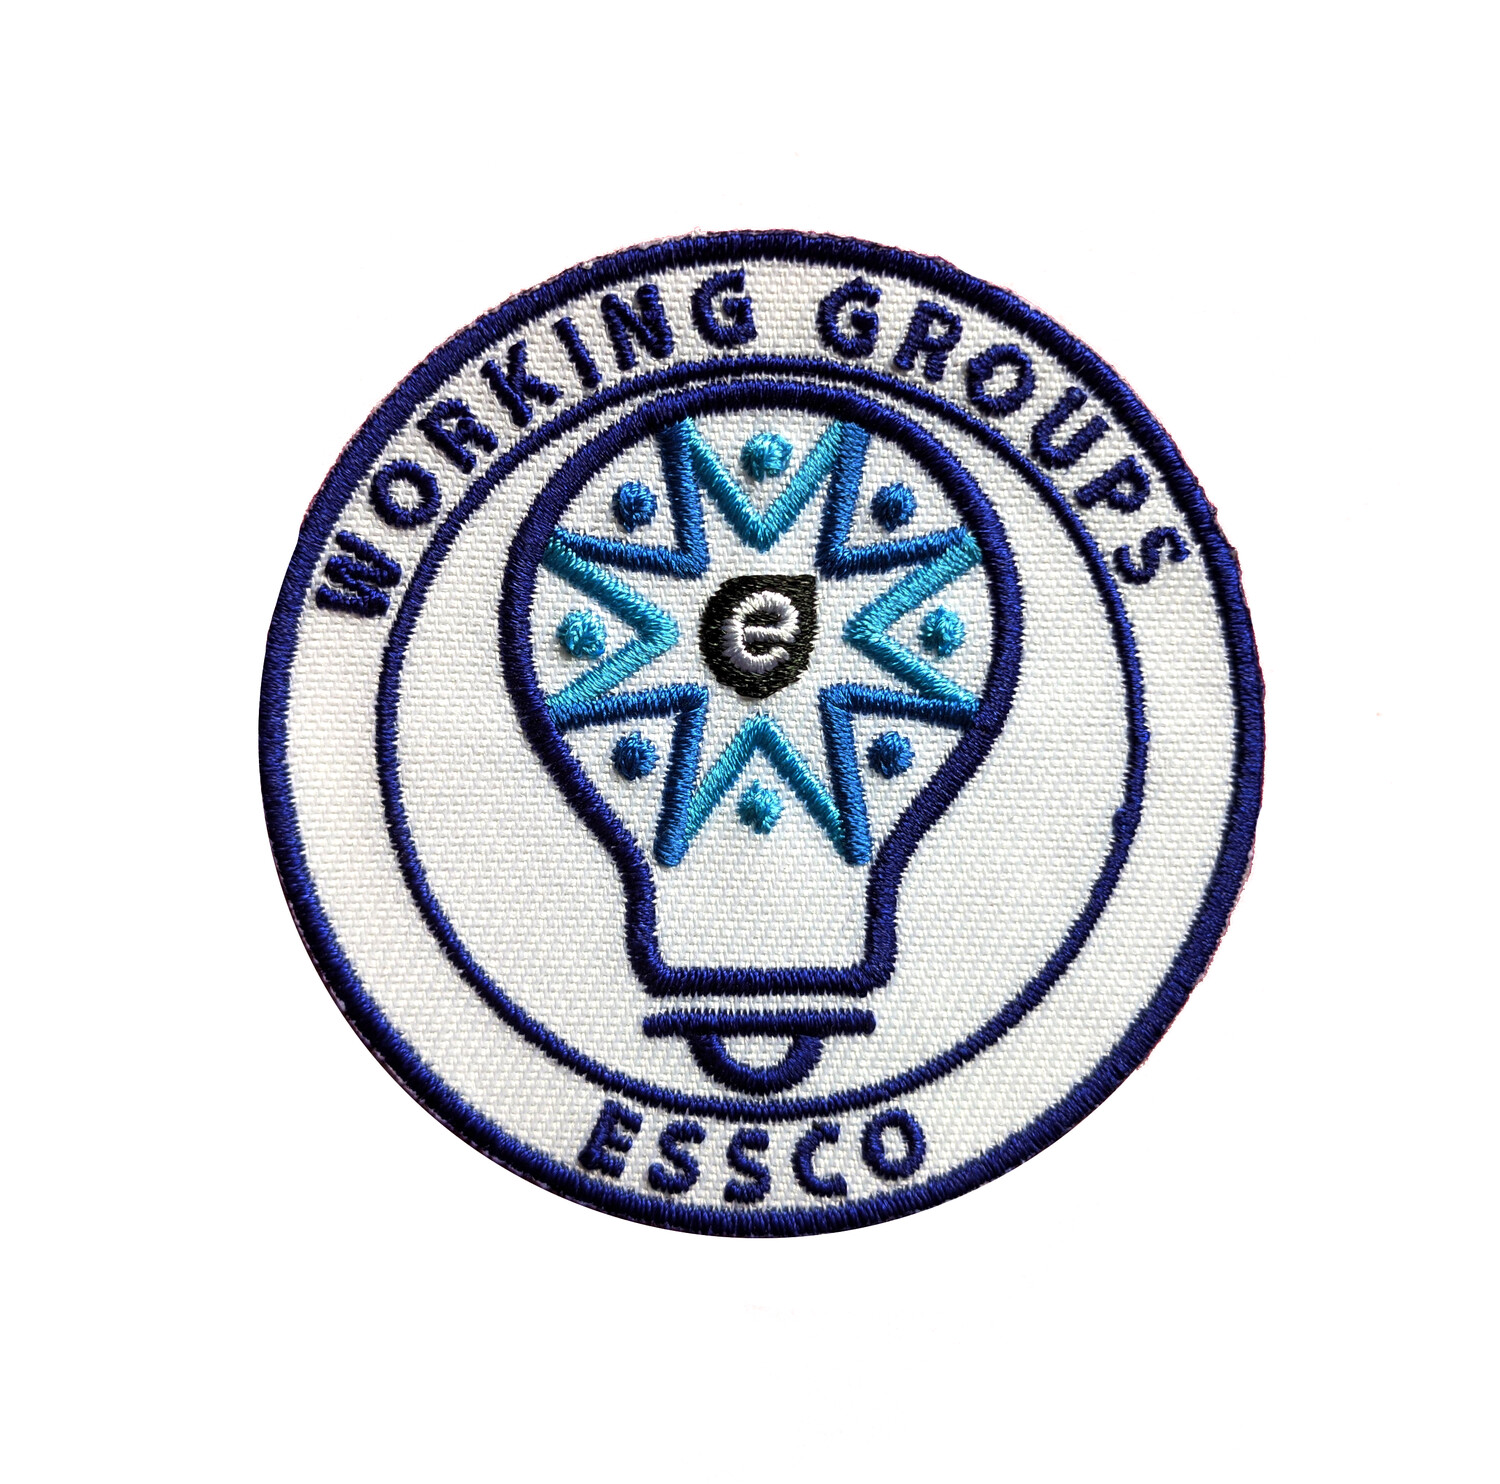 Patch - ESSCO Working Groups